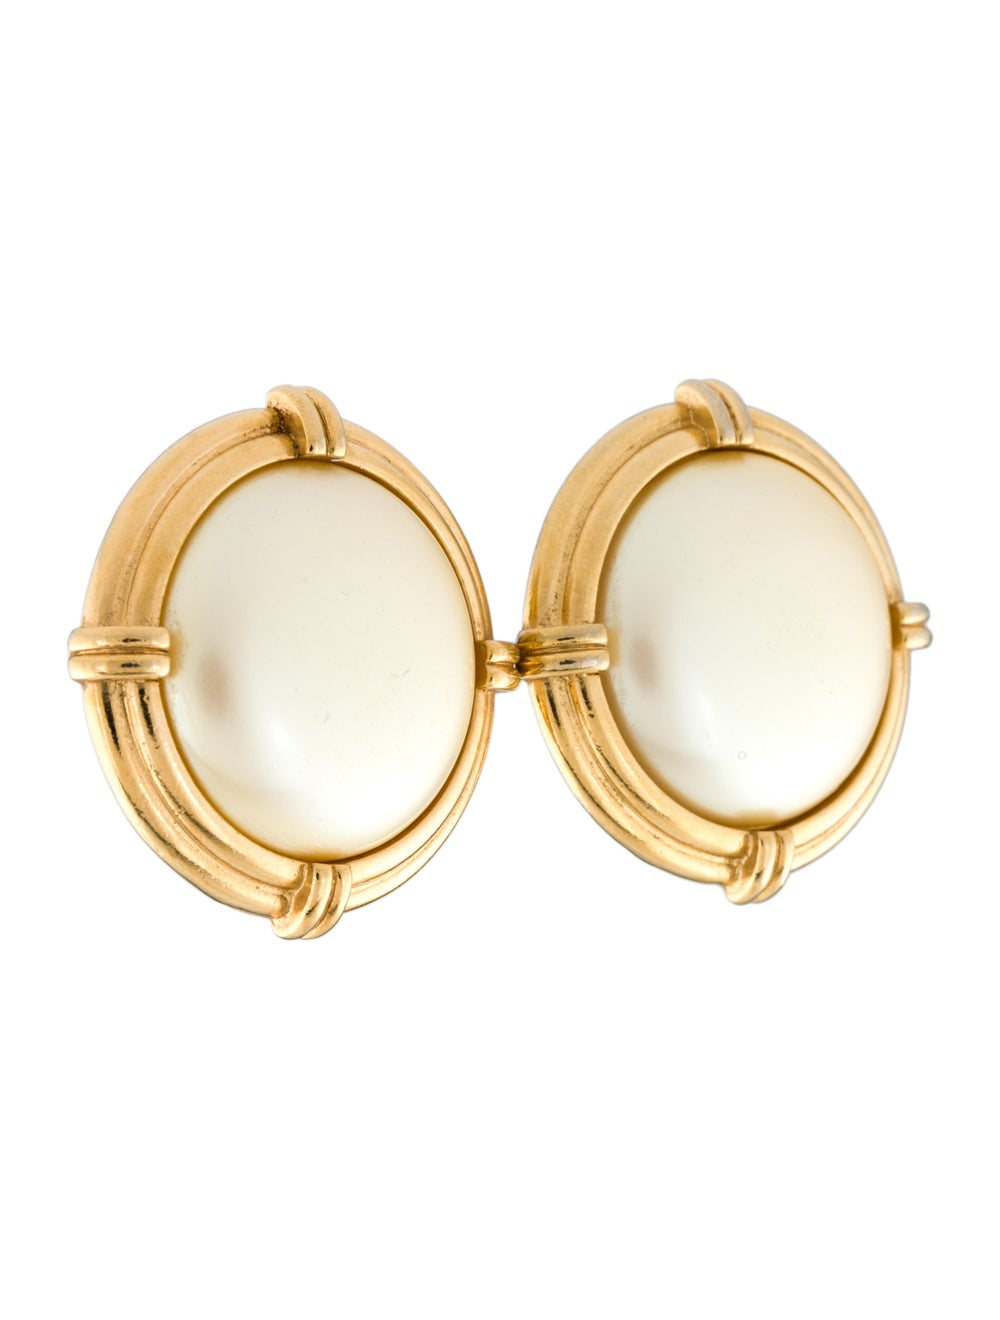 Yves Saint Laurent Faux Pearl Earclips Gold - image 3